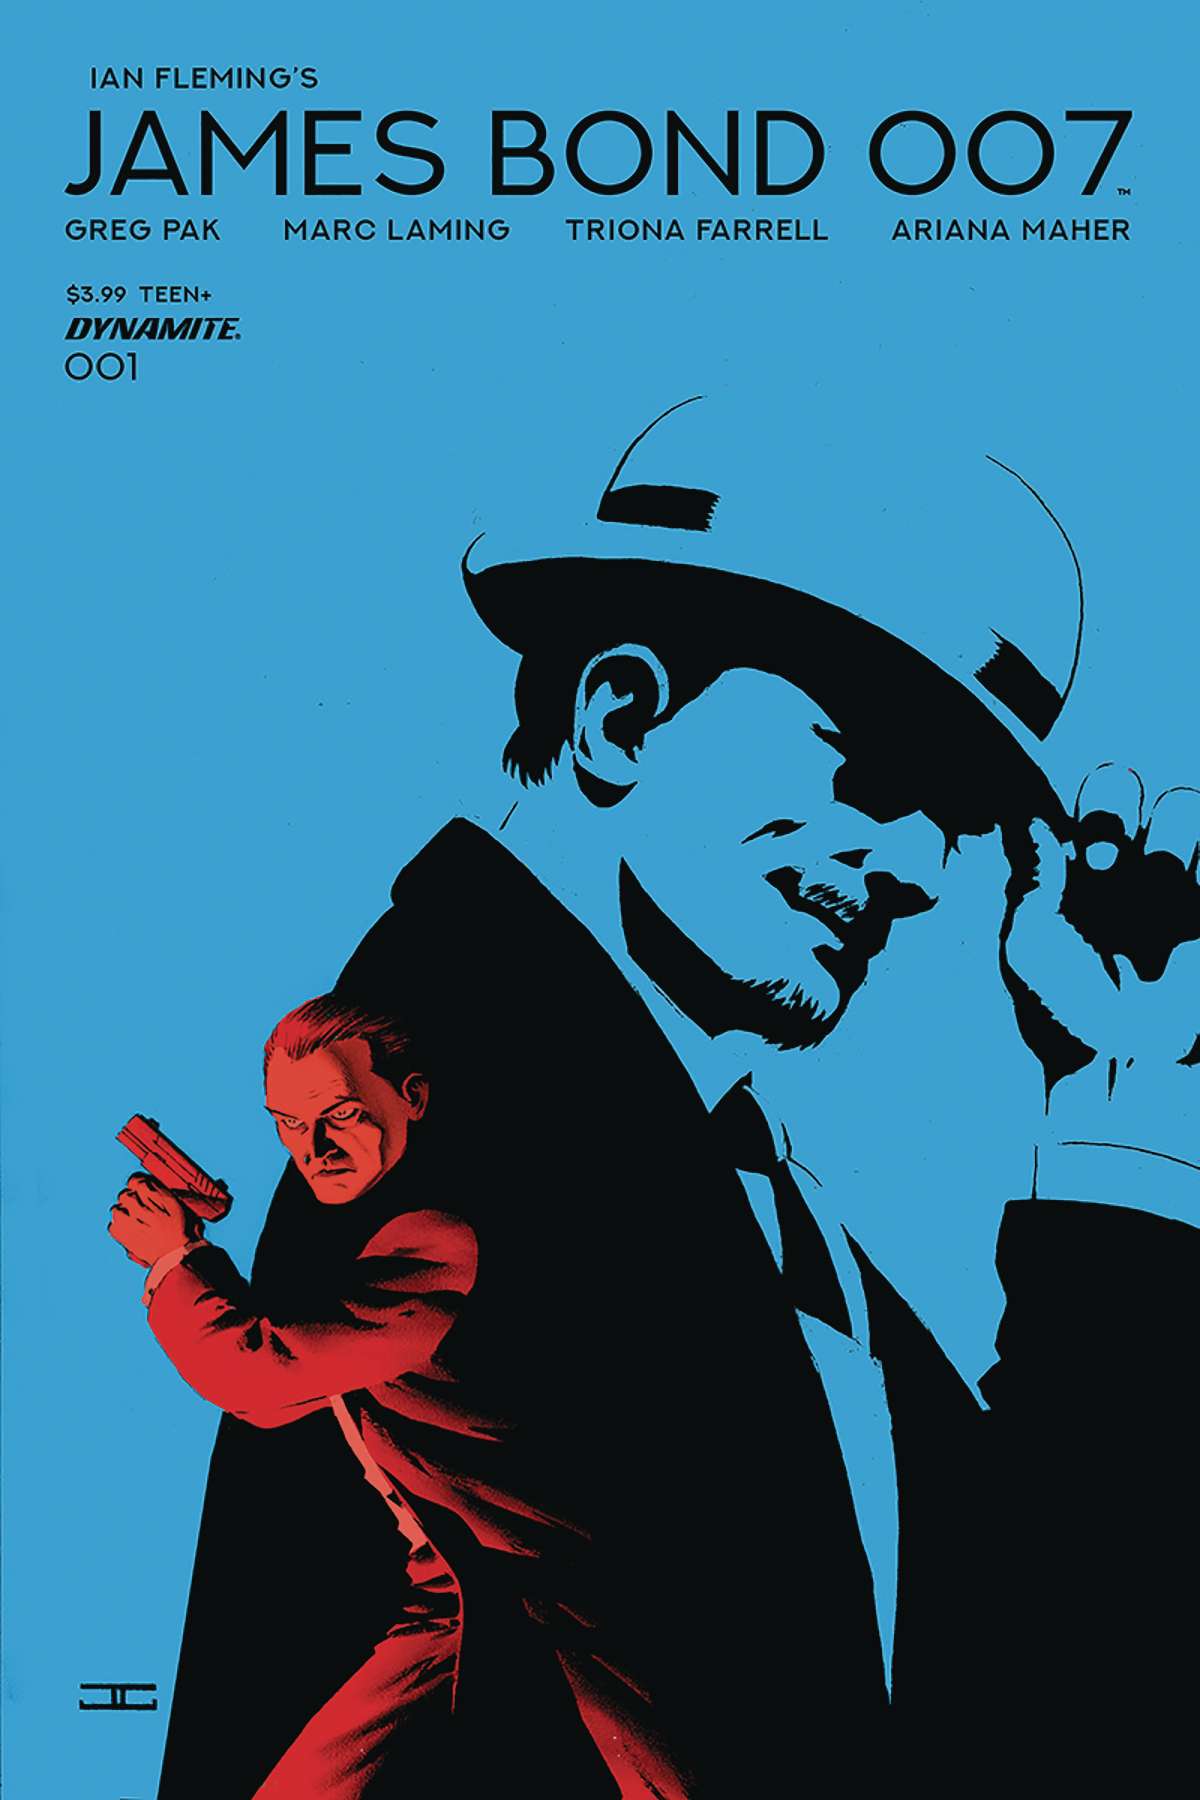 JAMES BOND 007 #1 CVR B CASSADAY